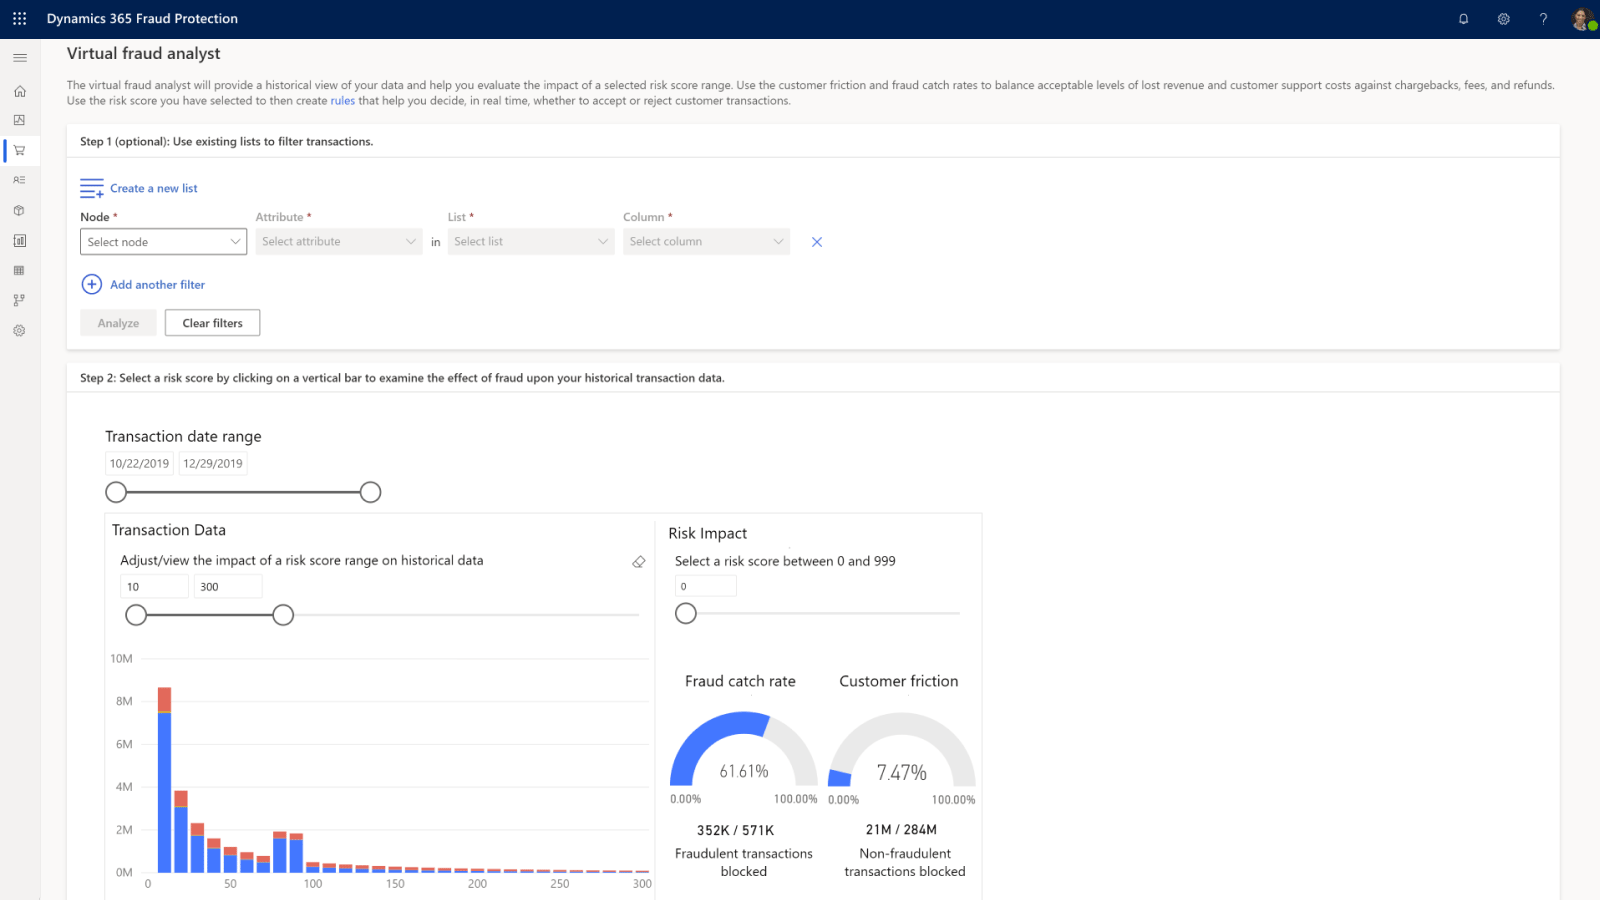 Dynamics 365 Fraud Protection visualise